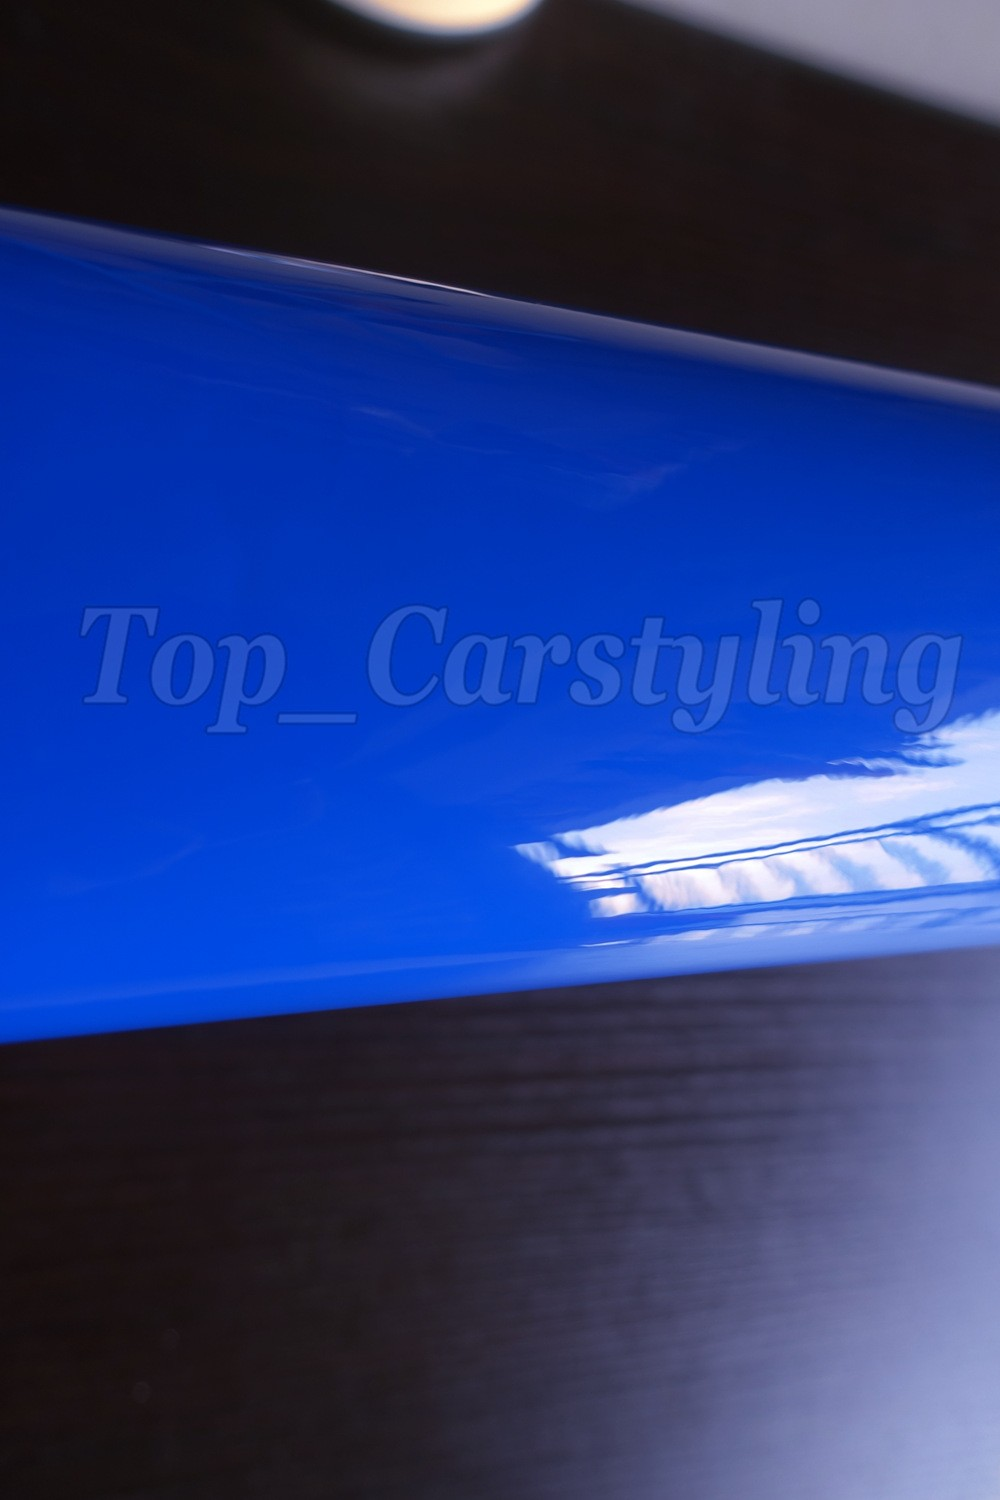 3 LAYER GLOSSY DARK BLUE CAR WRAPPING FILM WITH AIR FREE 3m 1080 HEXIS APA ARLON BLUE GLOSS SHINY WRAPPING FOIL (4)